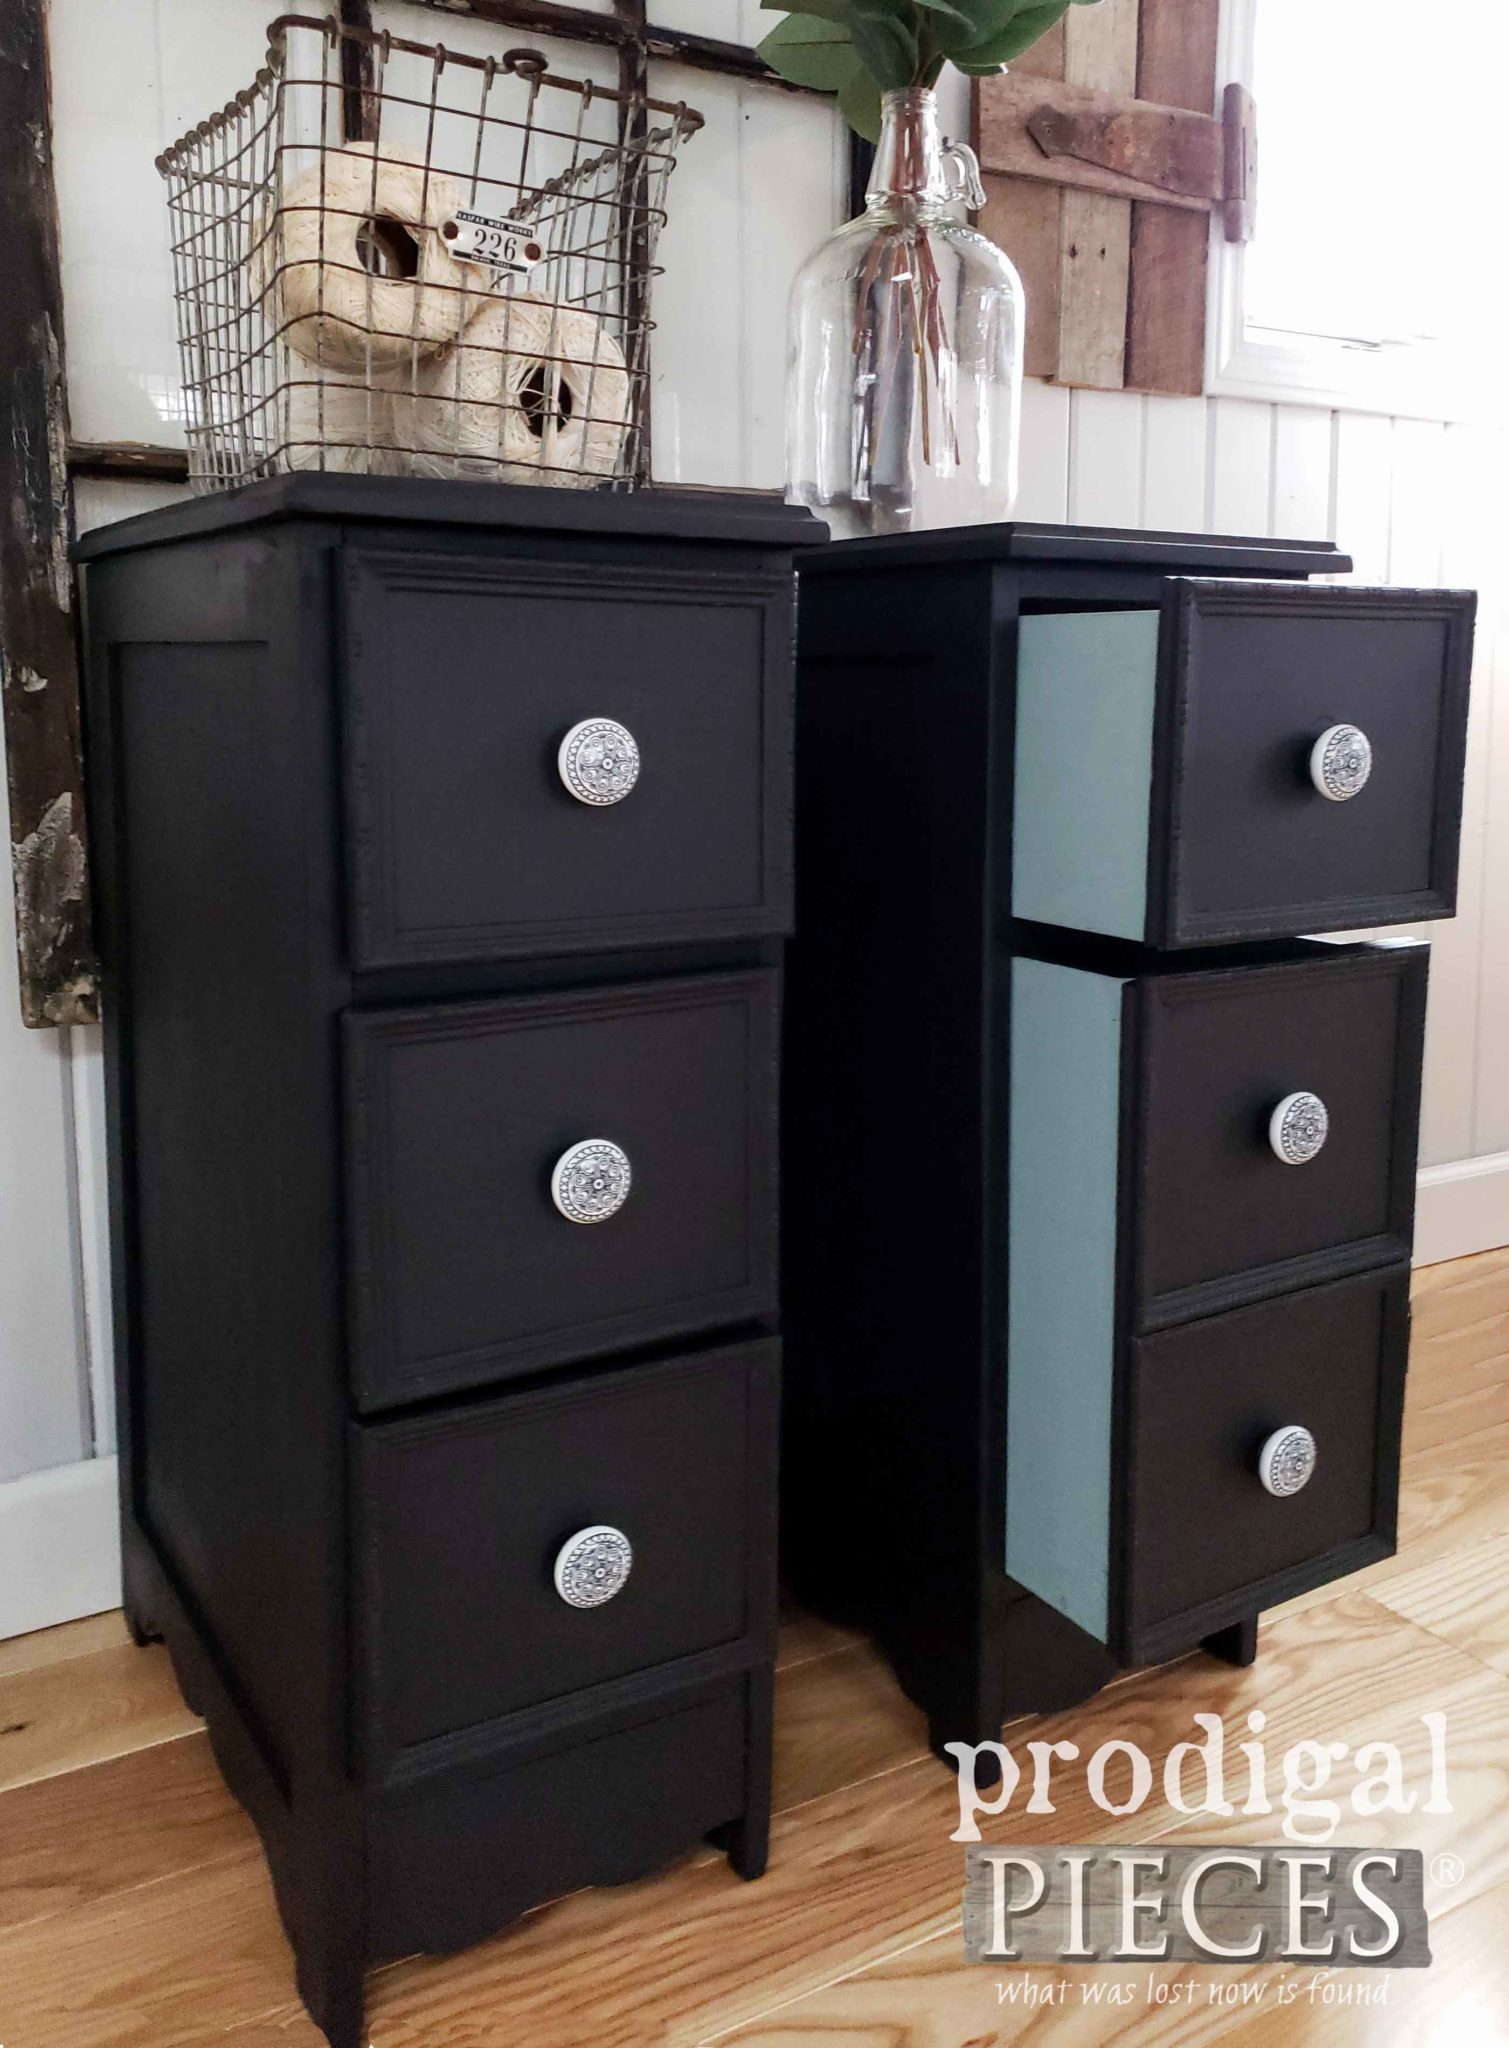 Diy Farmhouse Style Desk Upcycled Desk Into Nightstands Diy Fun Prodigal Pieces